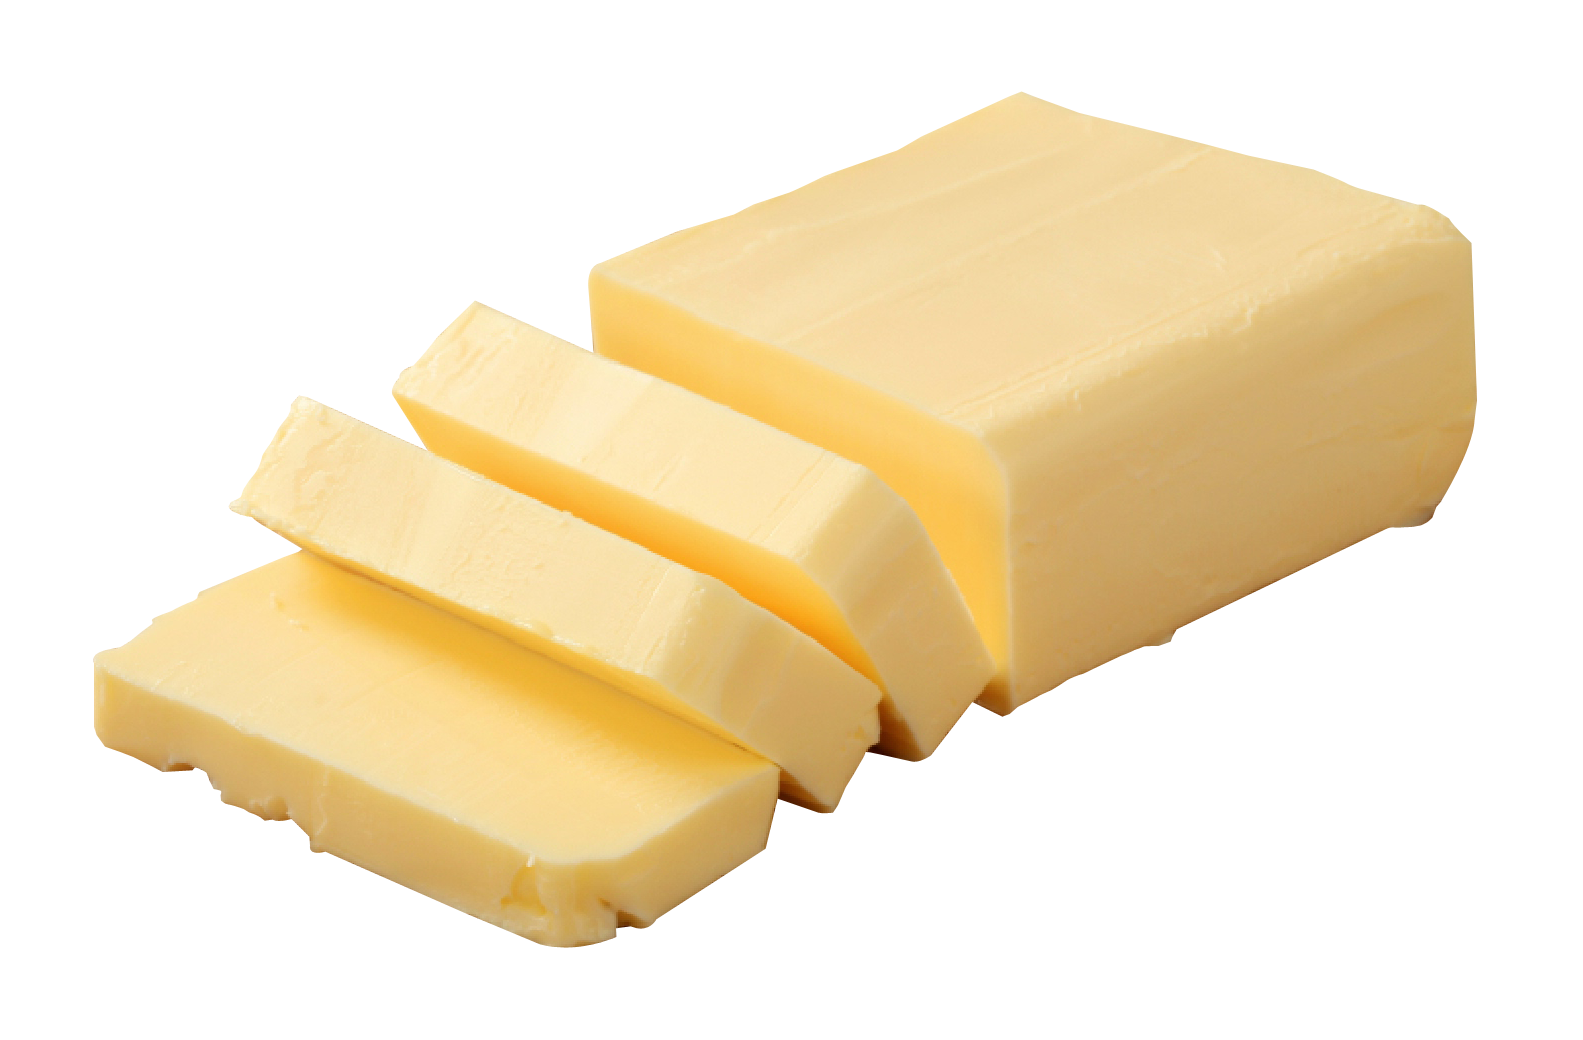 Cheese transparent png. Butter images